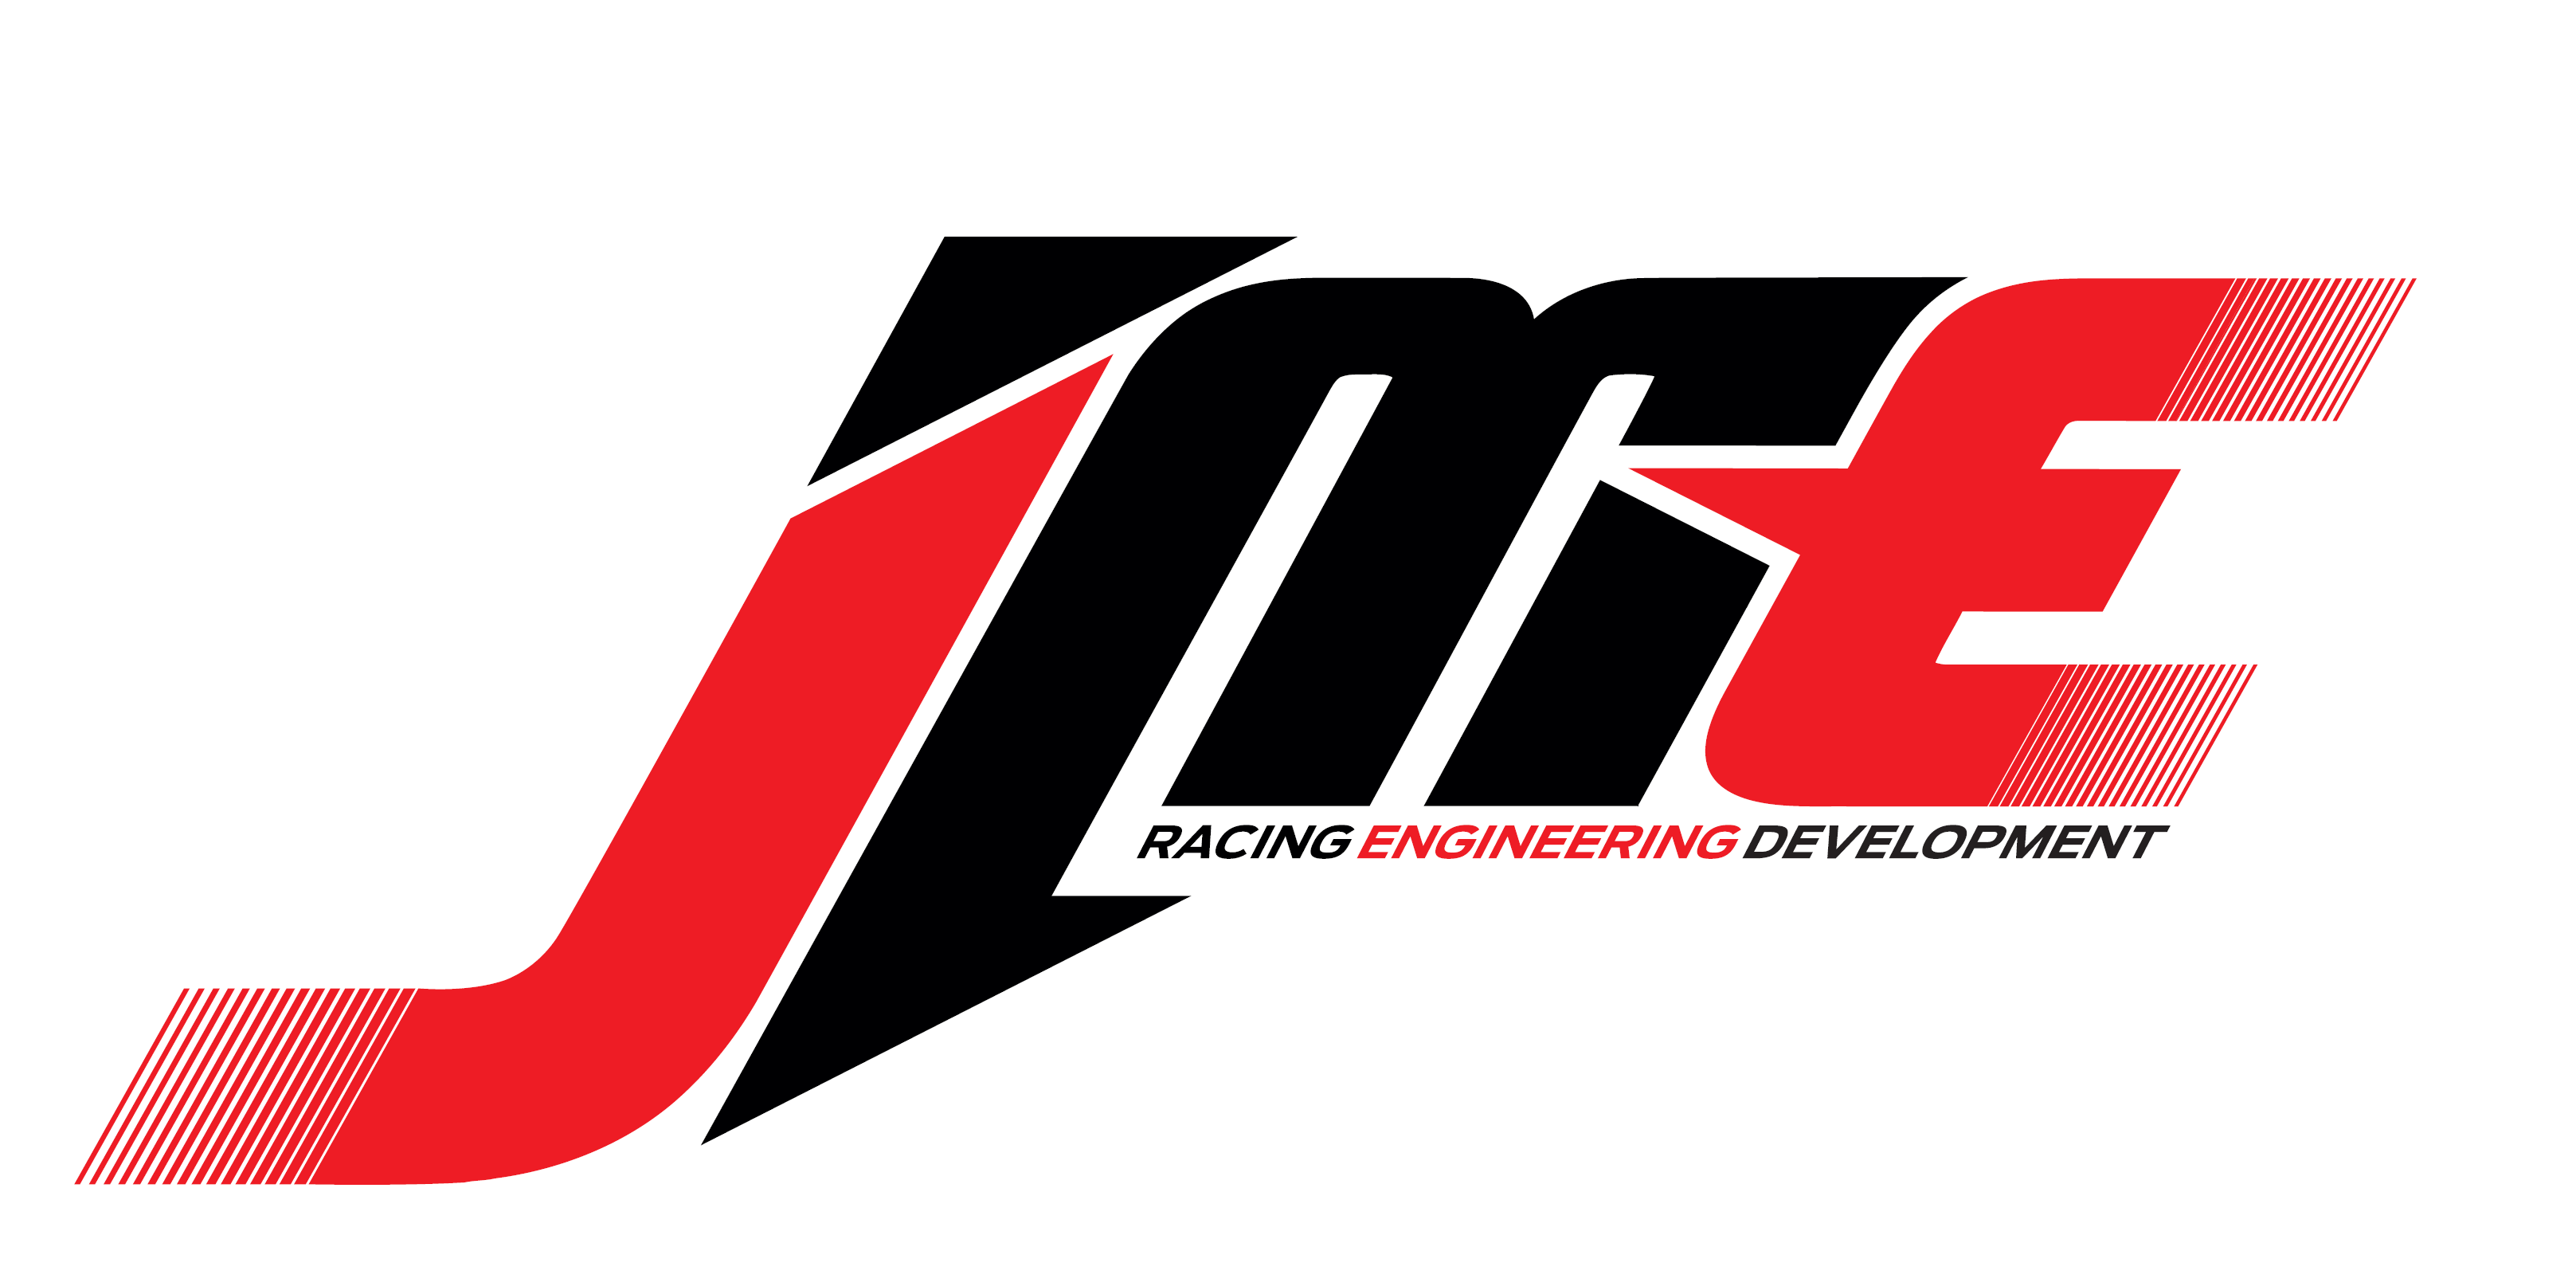 JME Racing Engineering Development